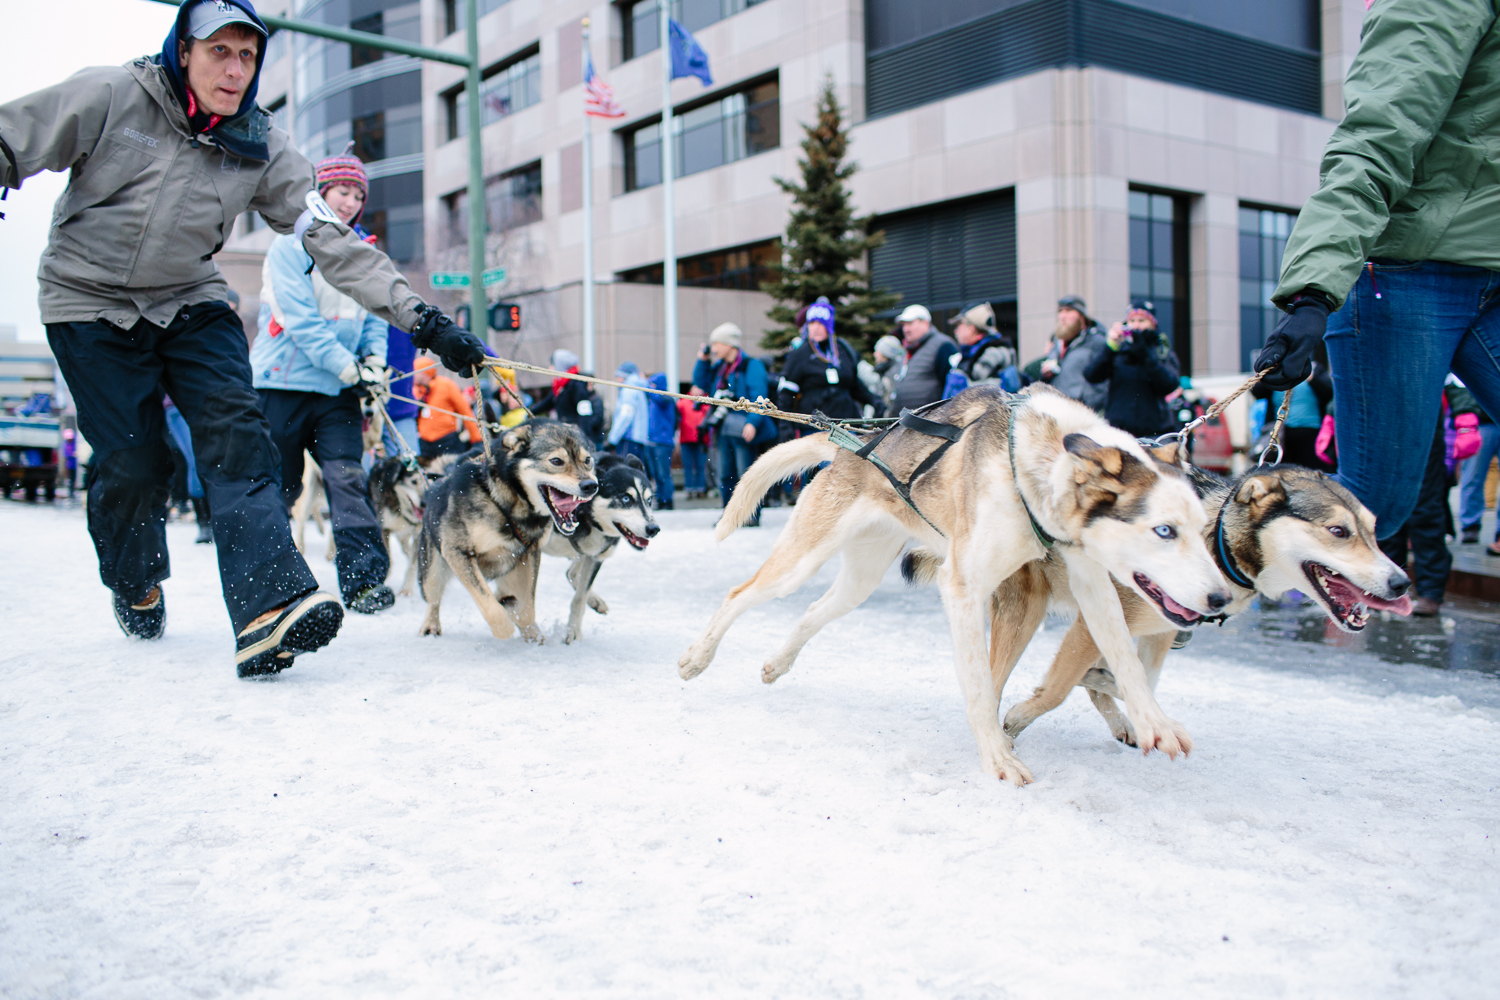 Dogs are led to the start of the Iditarod Ceremonial Start by mushers' assistants and dog handlers in Anchorage, Alaska on February 7, 2015.